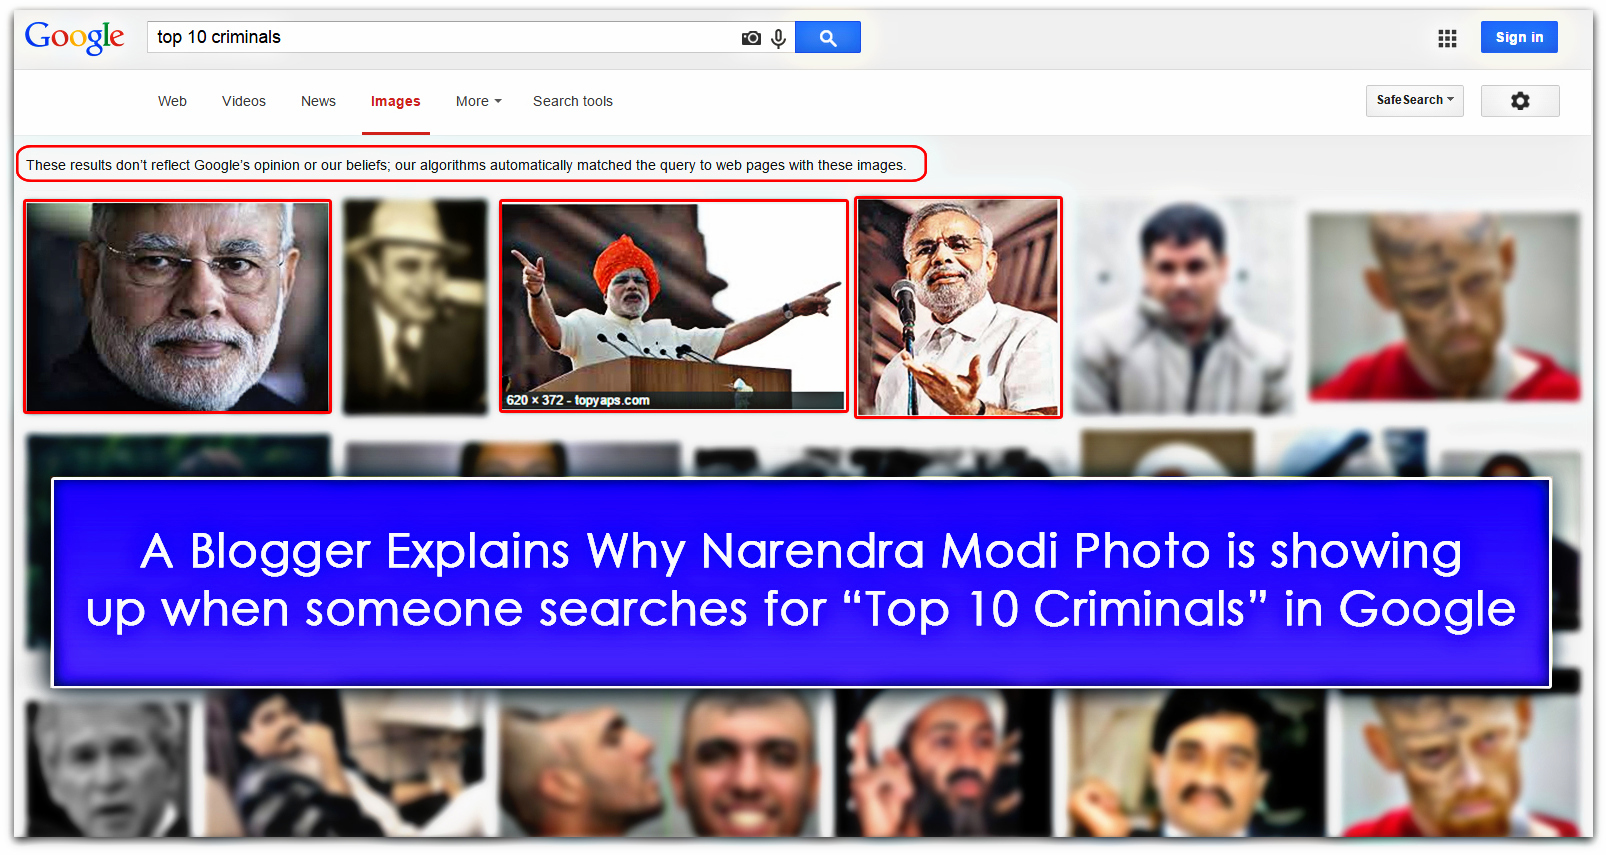 blogger explains why narendra modi shown up for criminal keyword